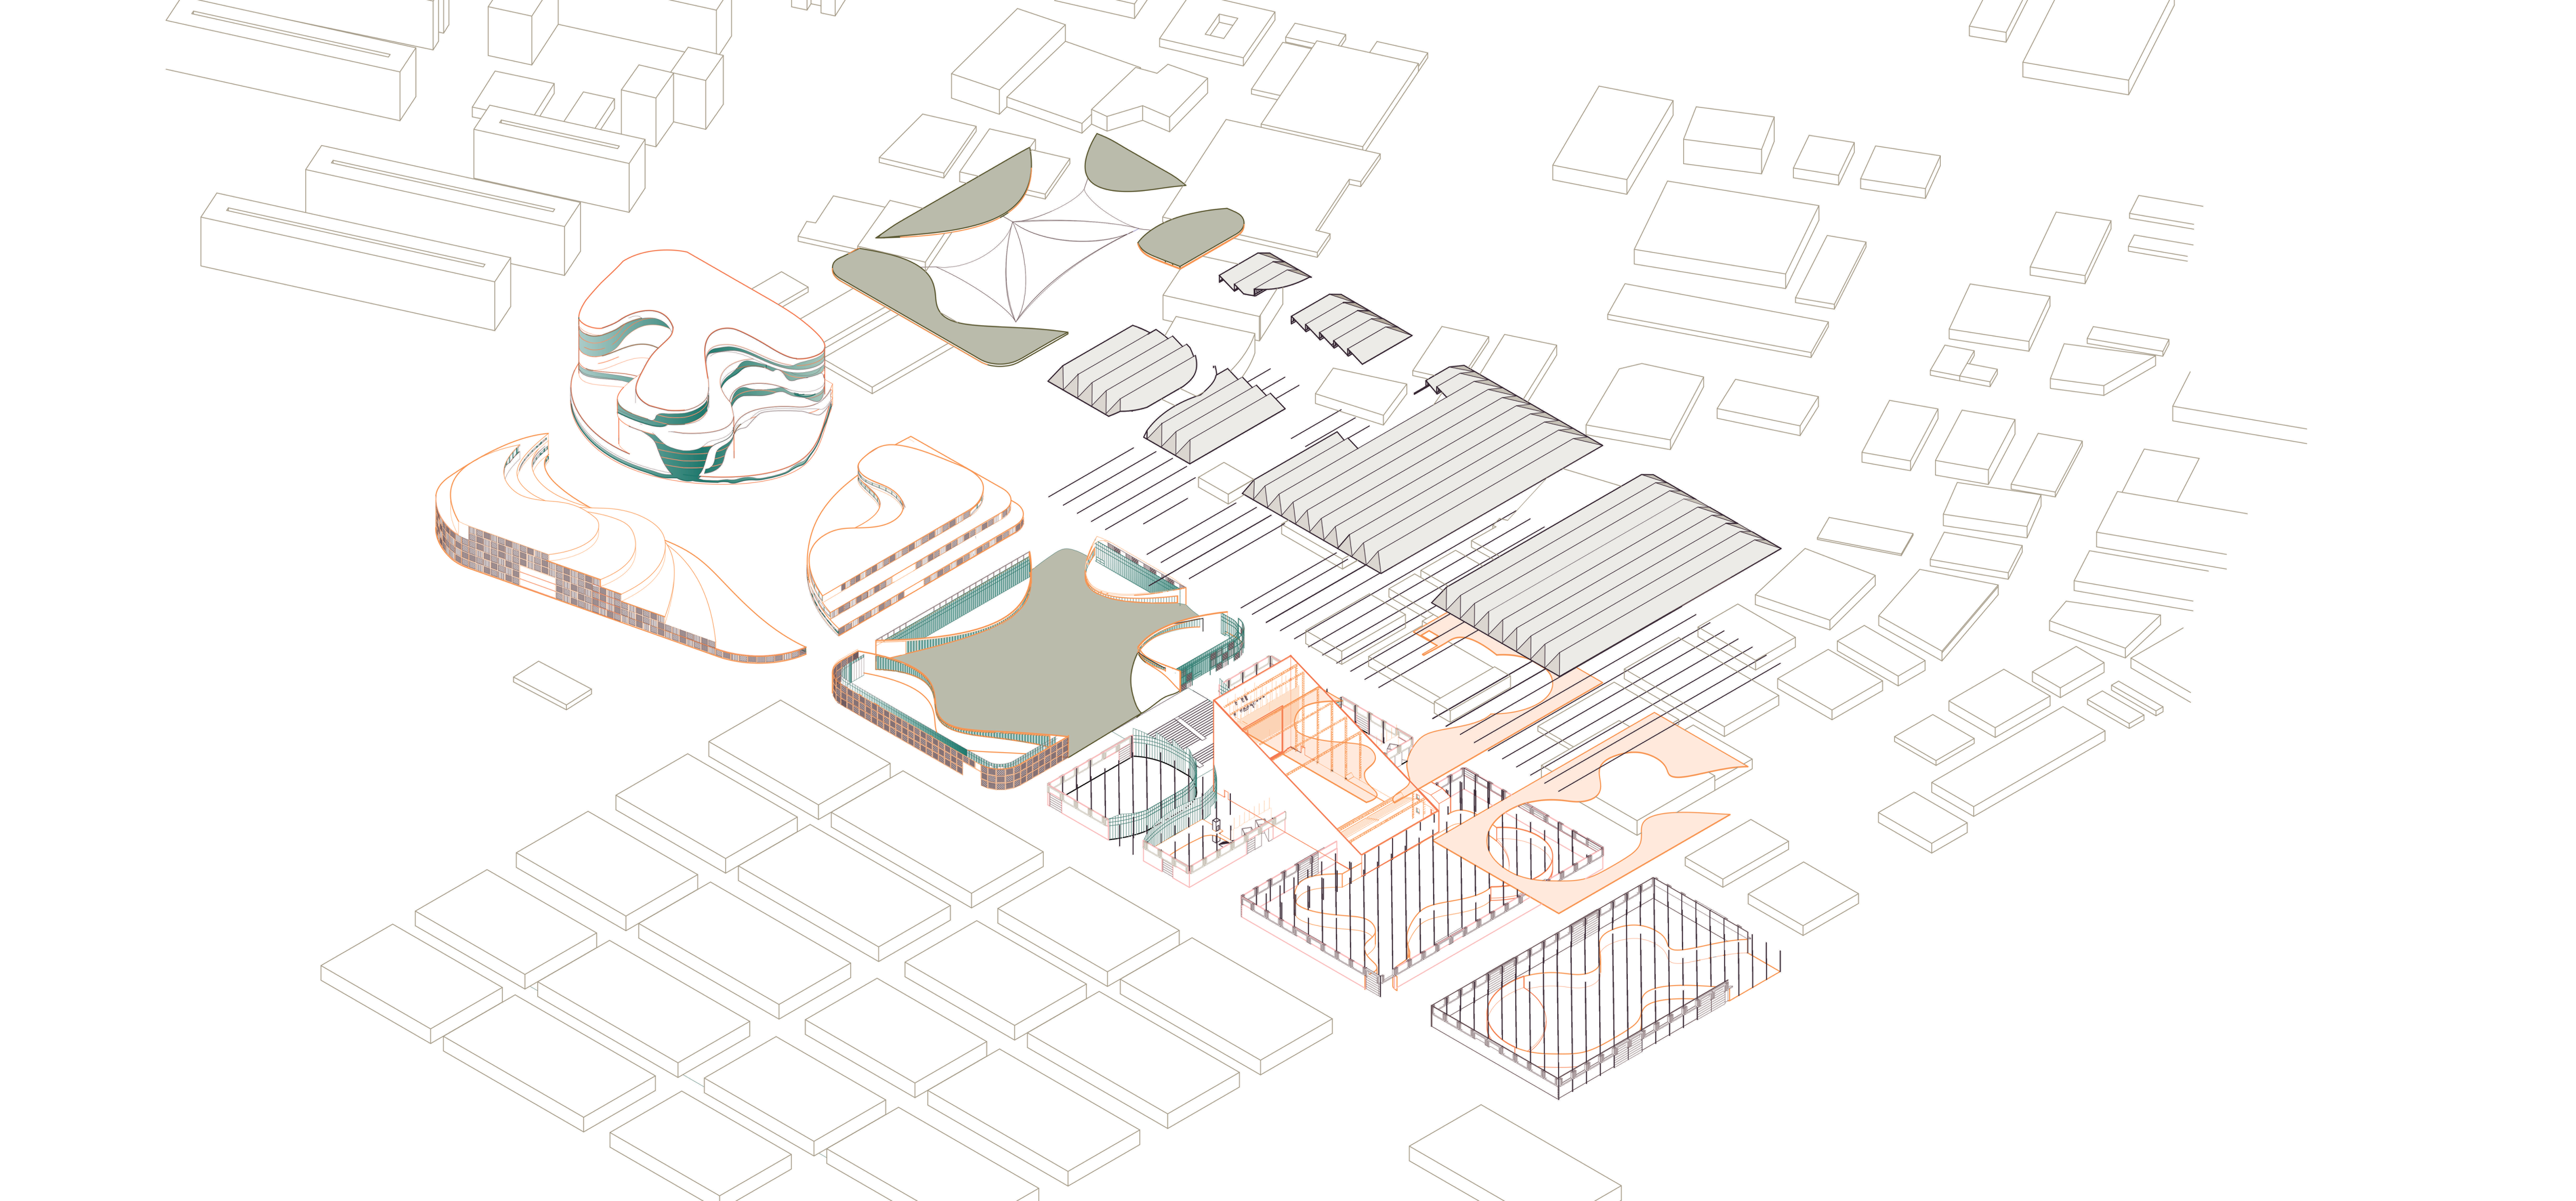 Exploded Site Axonometric